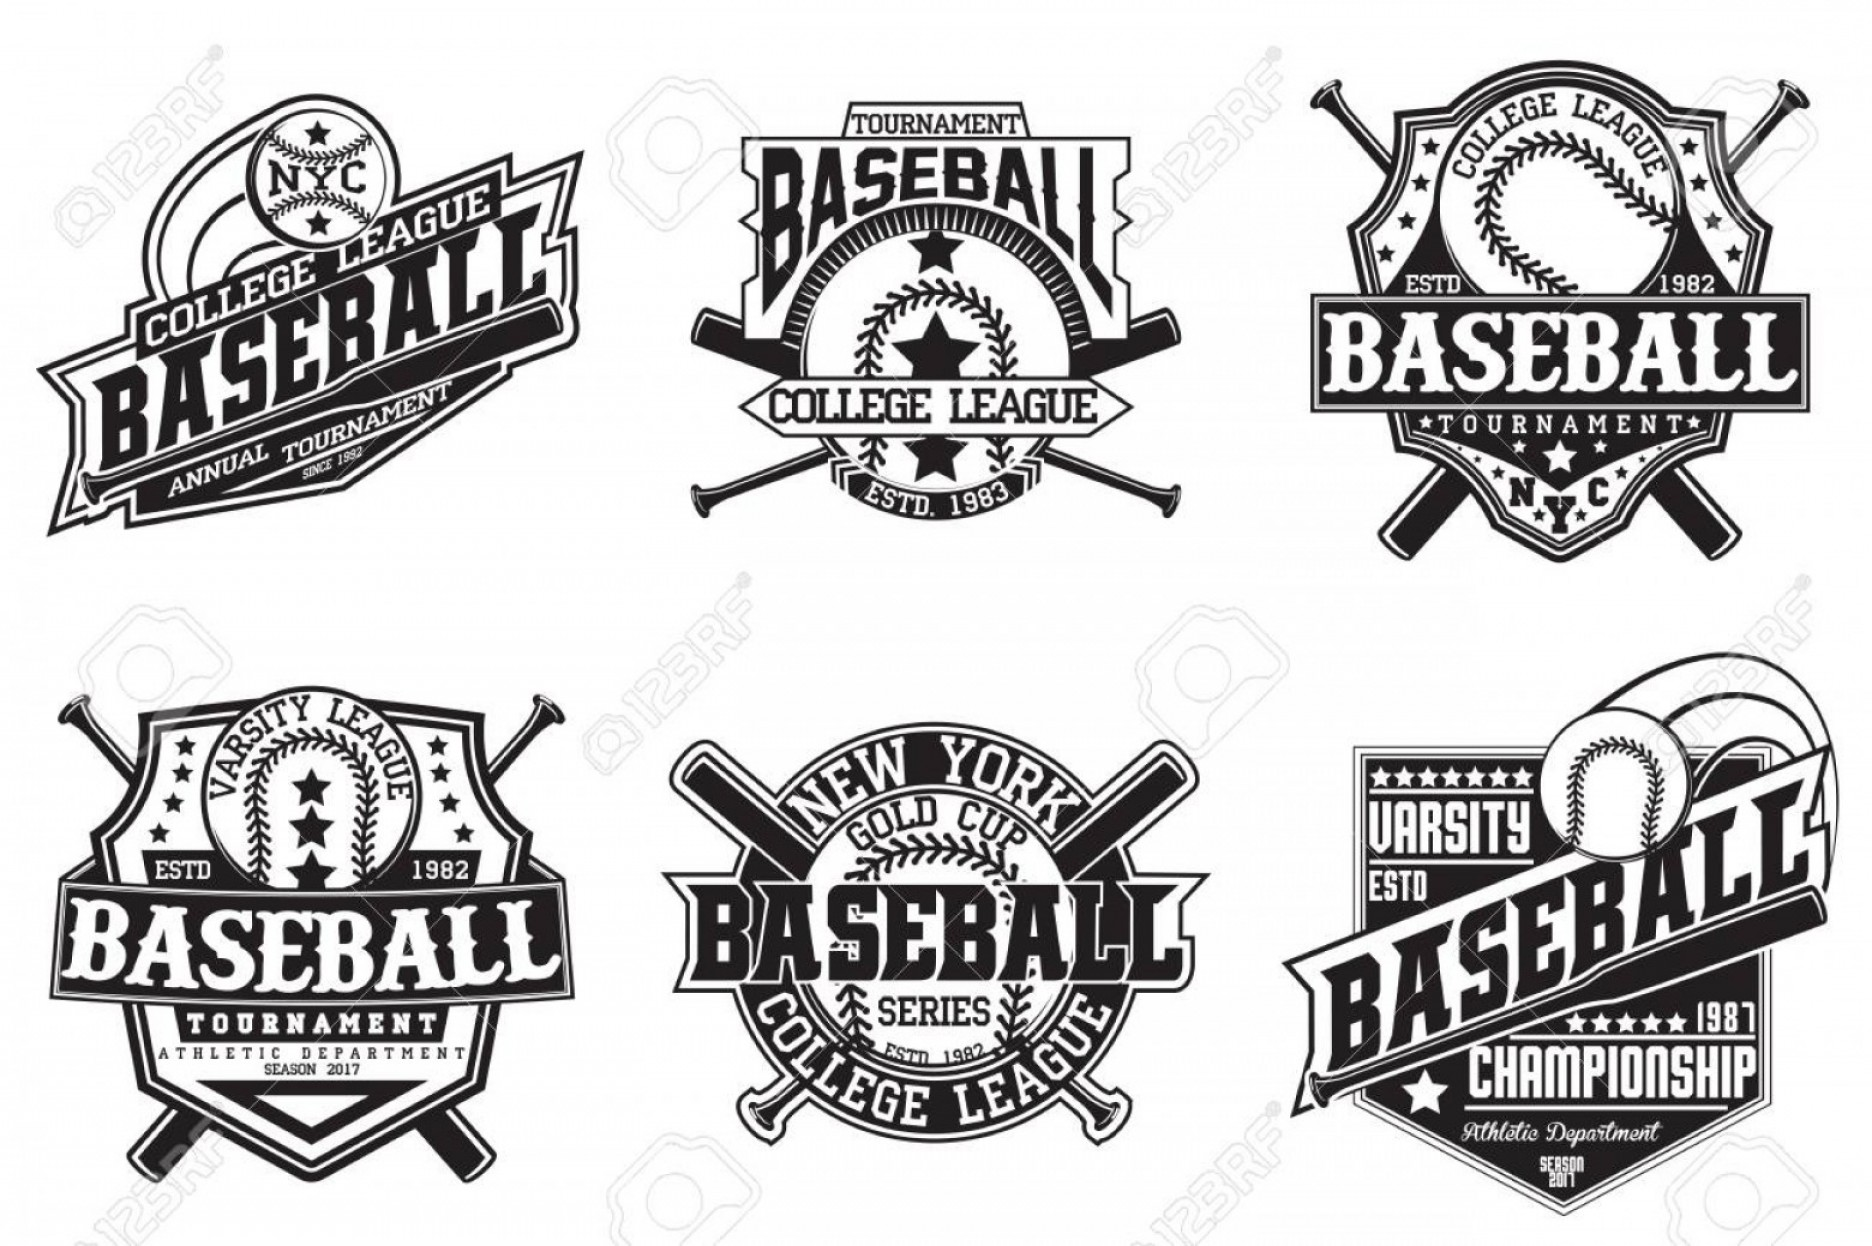 Vector Stamp Shirts: Photostock Vector Set Of Vintage T Shirt Graphic Designs Print Stamps Baseball Typography Emblems Sports Logos Creativ